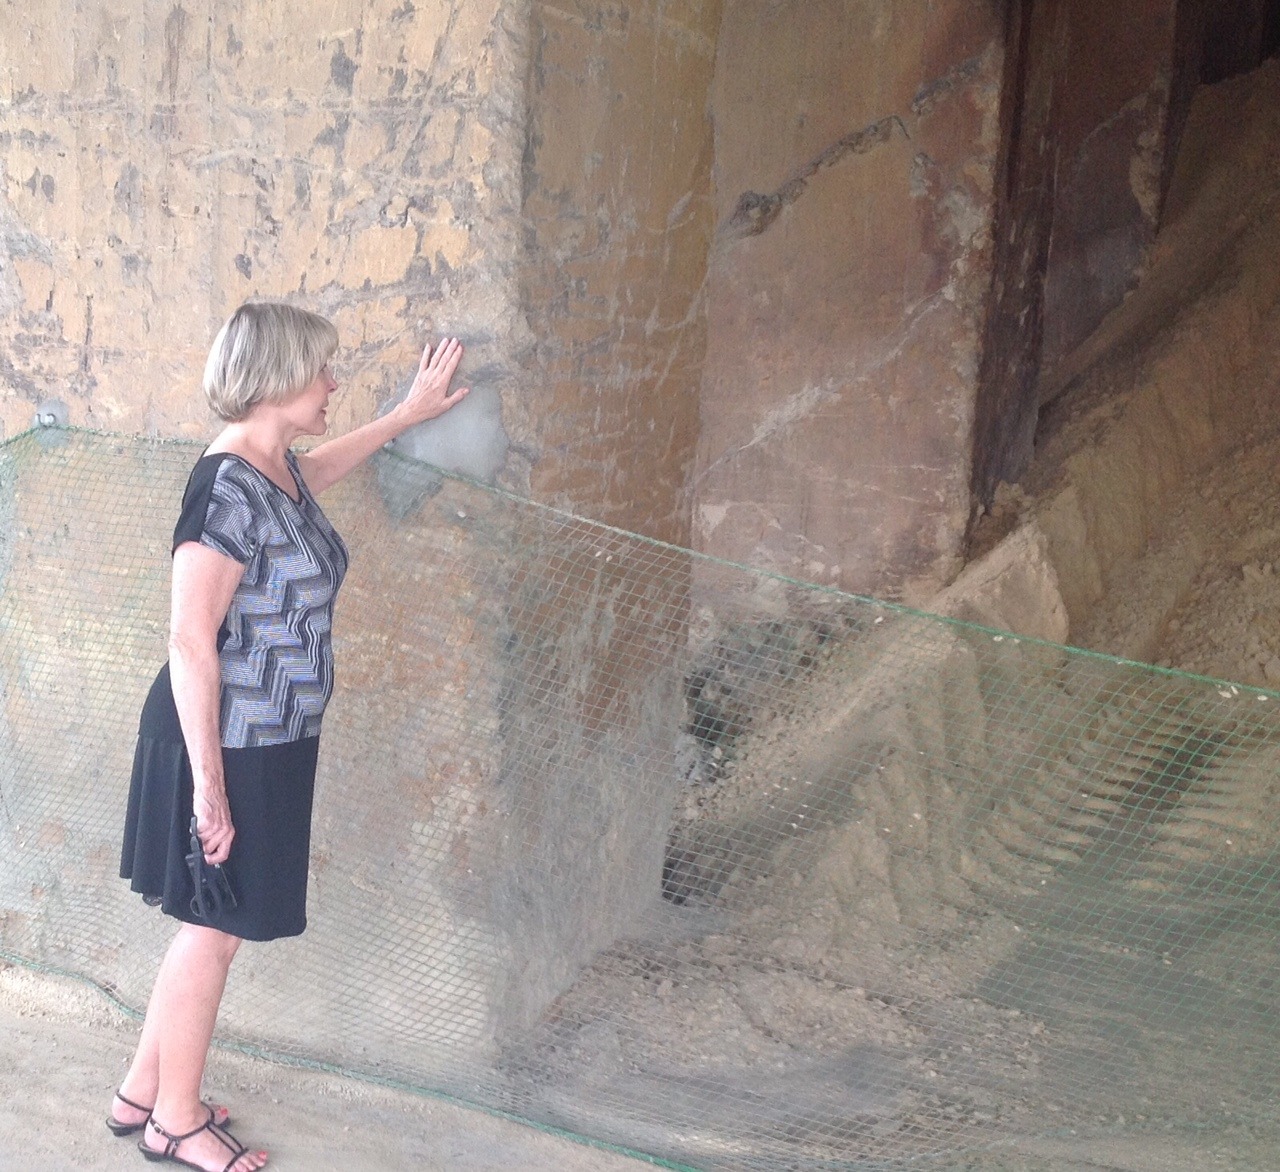 Kathy Holcomb touching the wall of one of the original buildings at the Ishihara Sangyo plant where her father labored as a POW in World War II